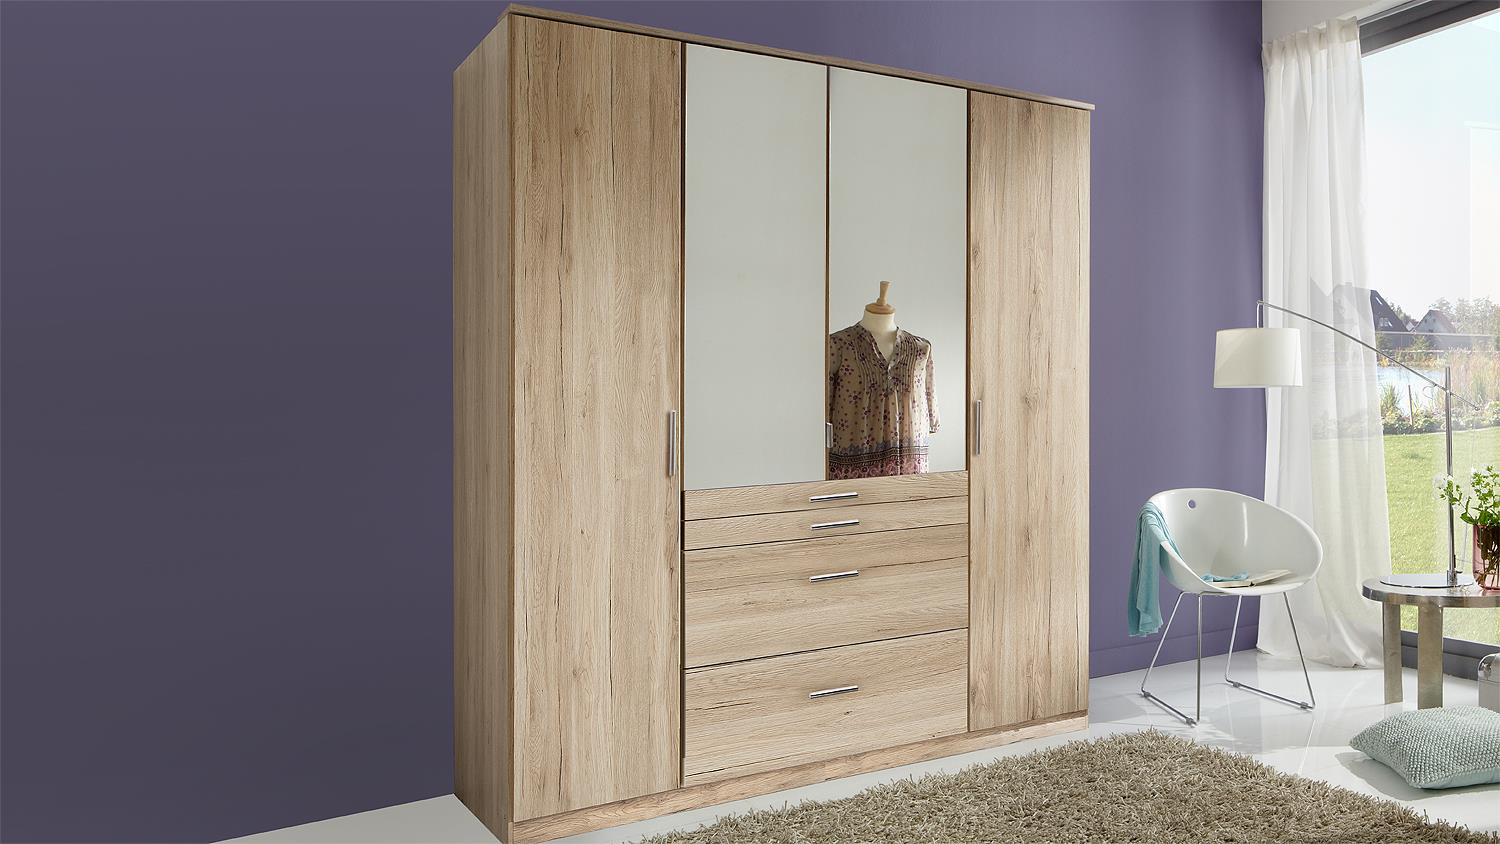 kleiderschrank aachen schrank in san remo eiche hell mit spiegel 180. Black Bedroom Furniture Sets. Home Design Ideas